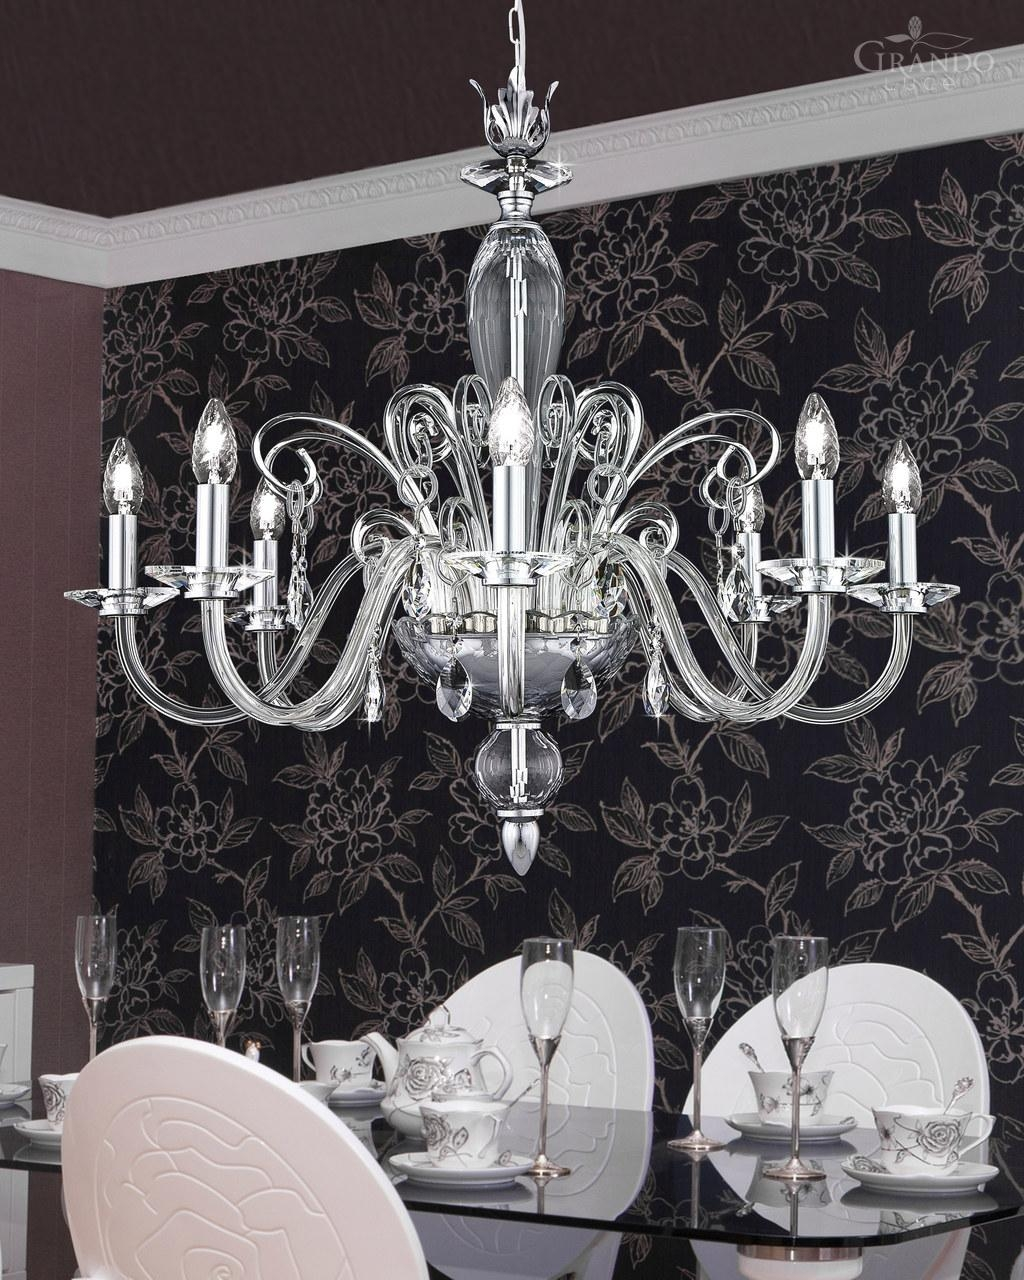 1208 Ch Chrome Crystal Chandelier With Swarovski Elements Intended For Crystal And Chrome Chandeliers (Image 2 of 15)